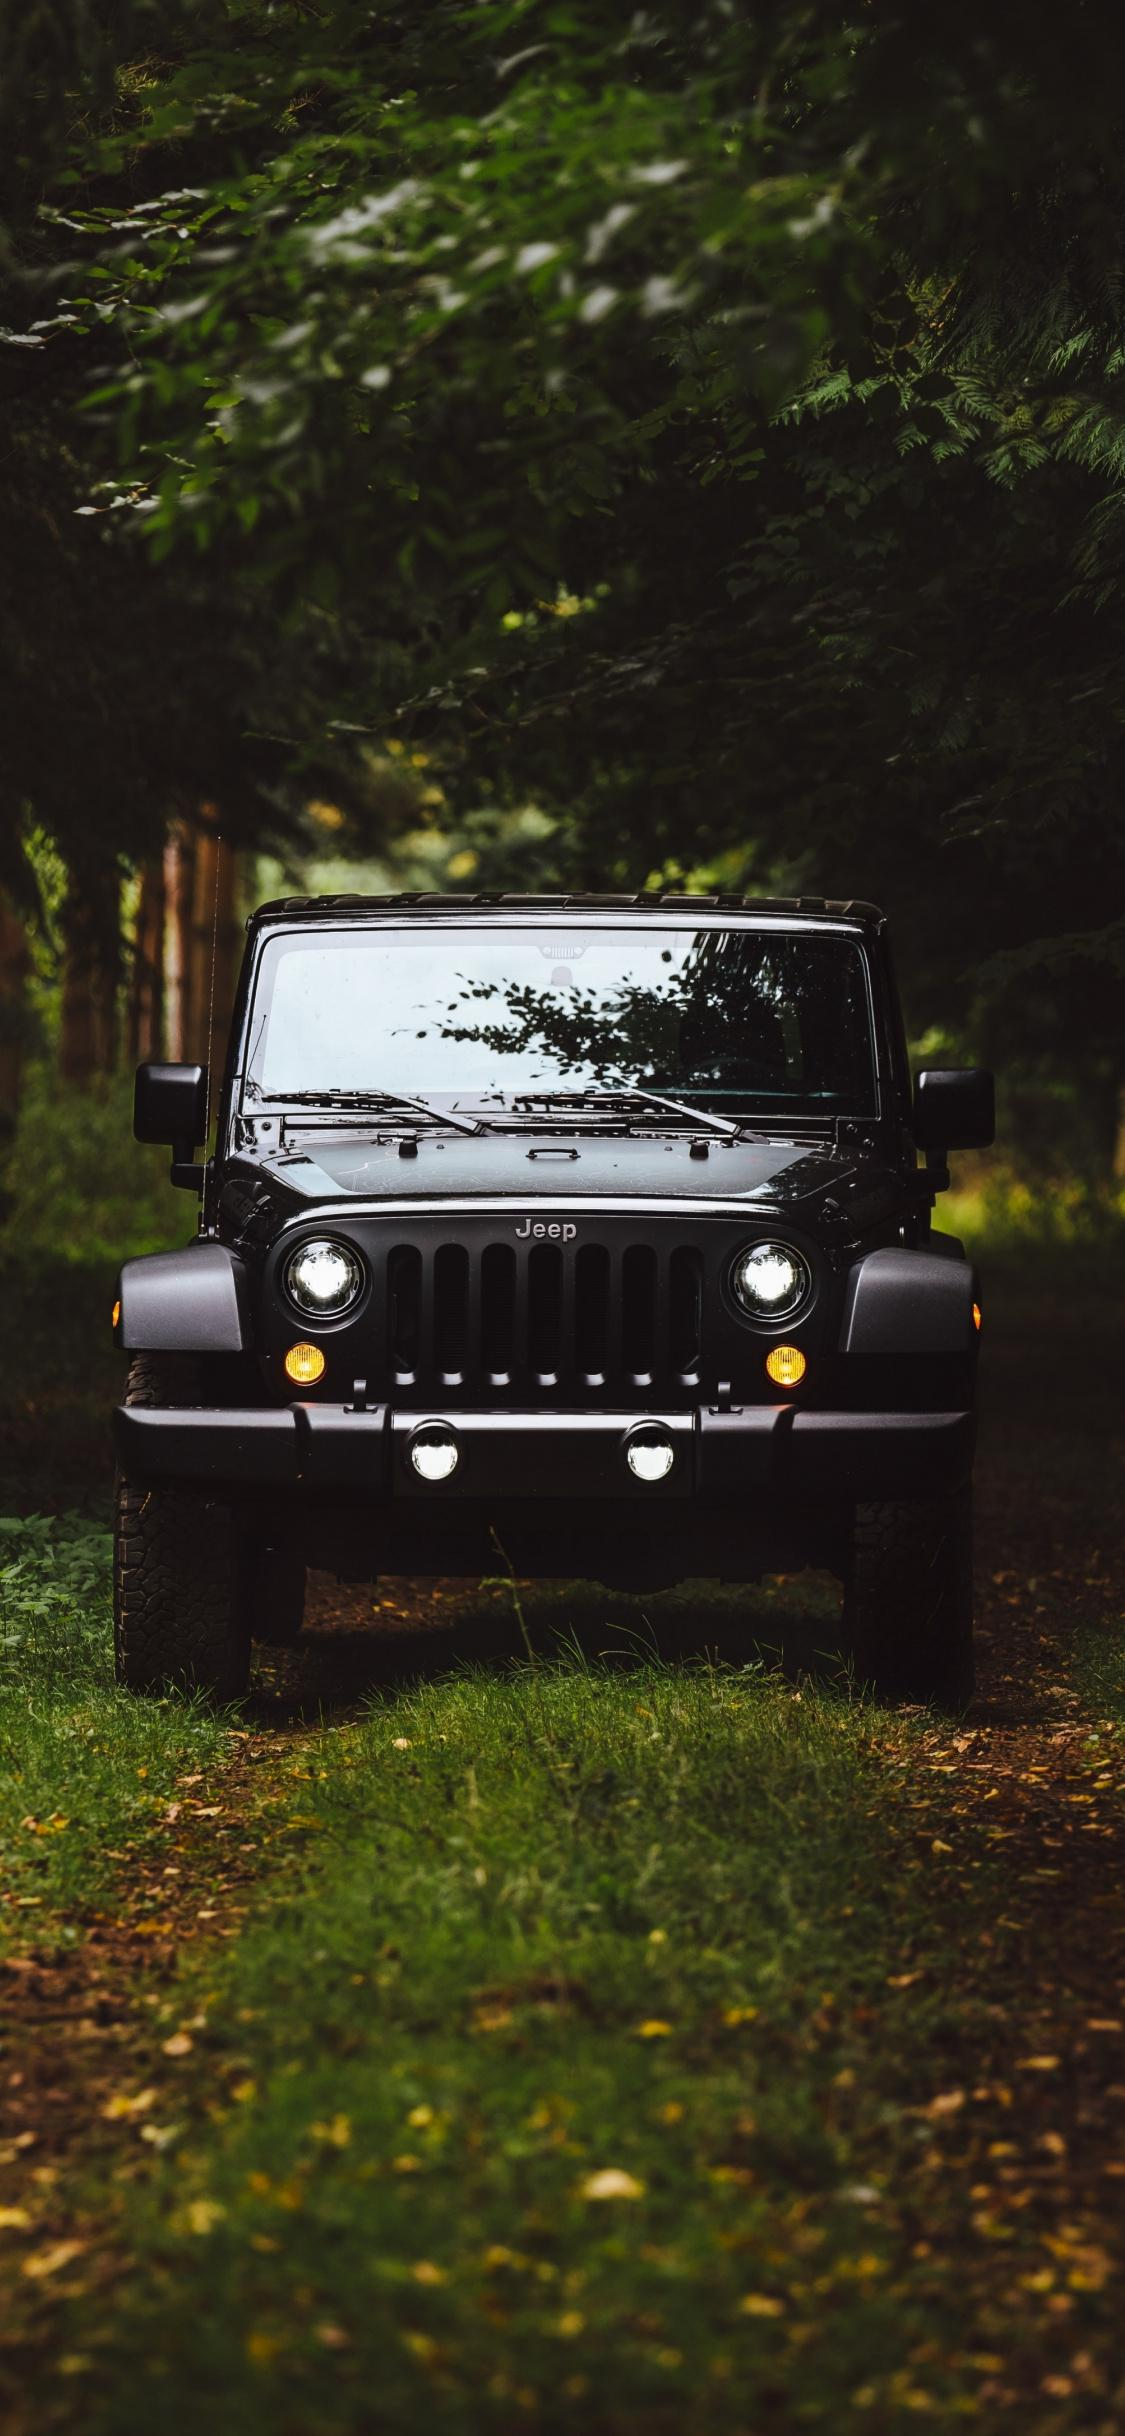 Jeep Iphone Wallpapers Wallpaper Cave